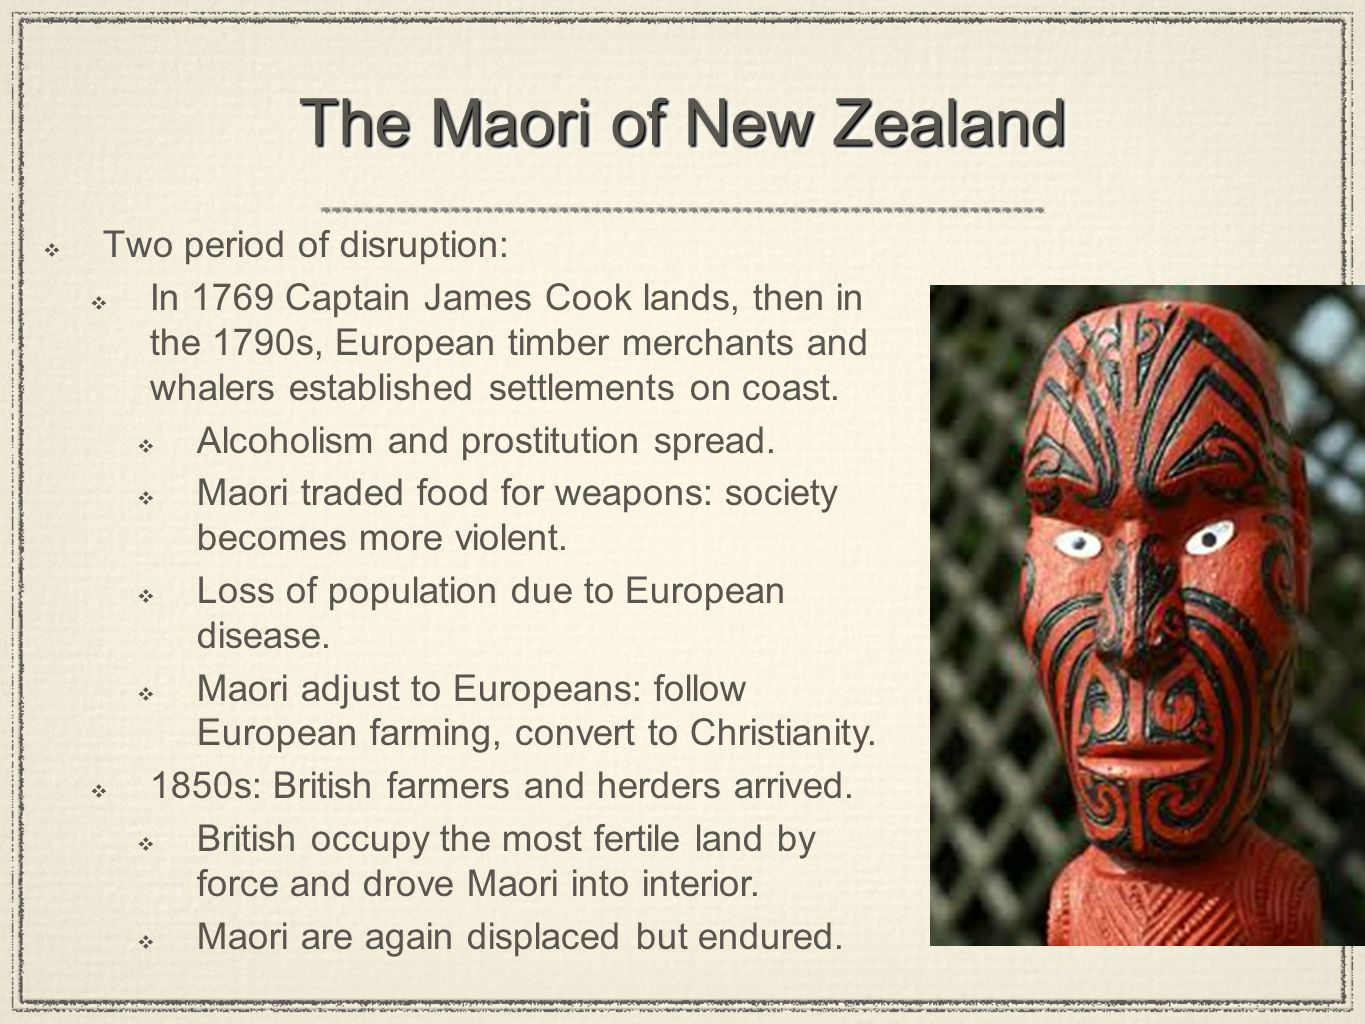 The Maori of New Zealand Two period of disruption: In 1769 Captain James Cook lands, then in the 1790s, European timber merchants and whalers establis